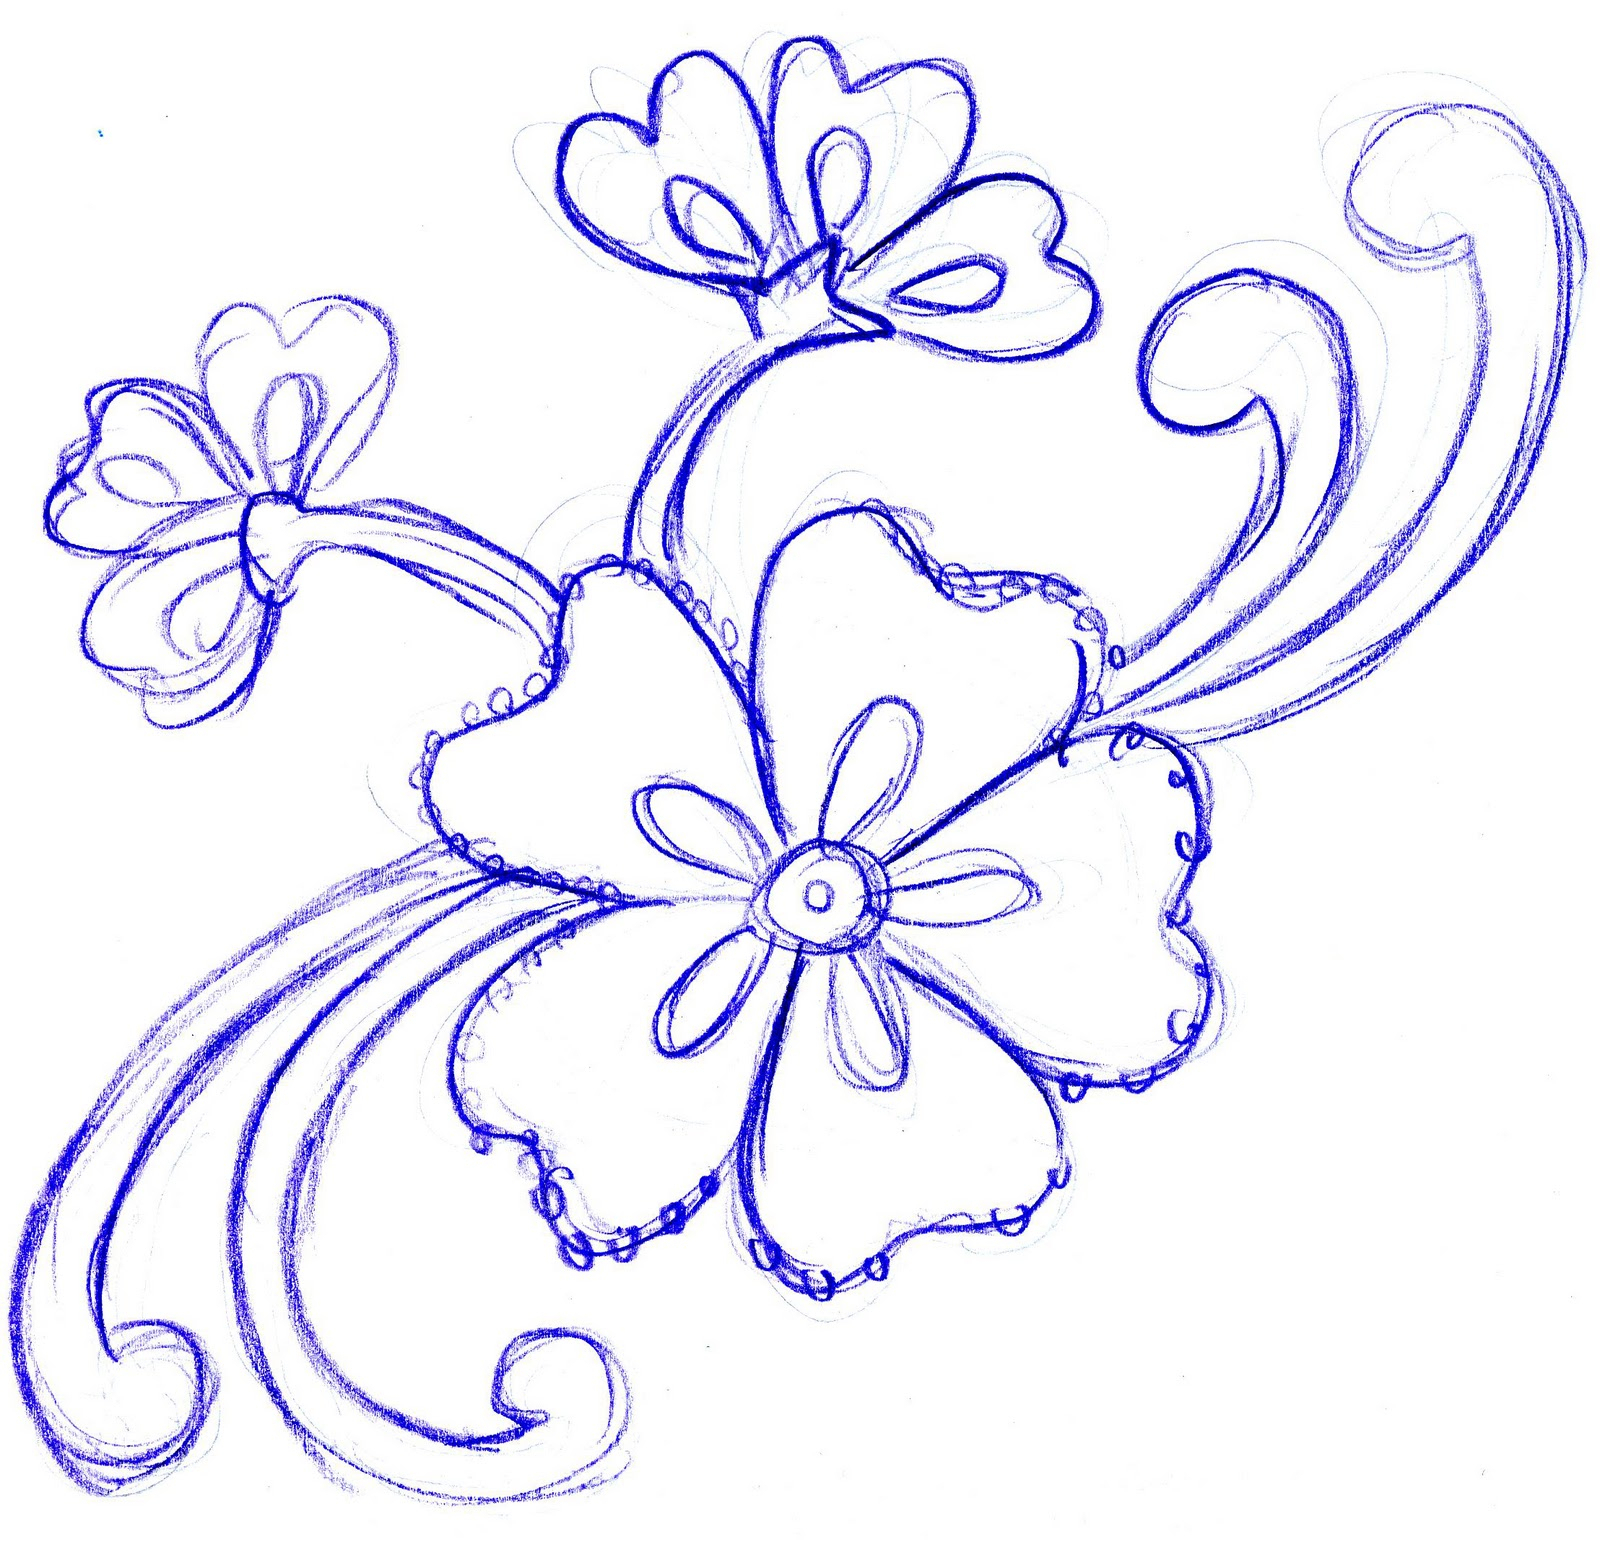 Flower design drawing at getdrawings free for personal use 1600x1542 pencil sketch flower design pictures pencil sketch design of altavistaventures Image collections